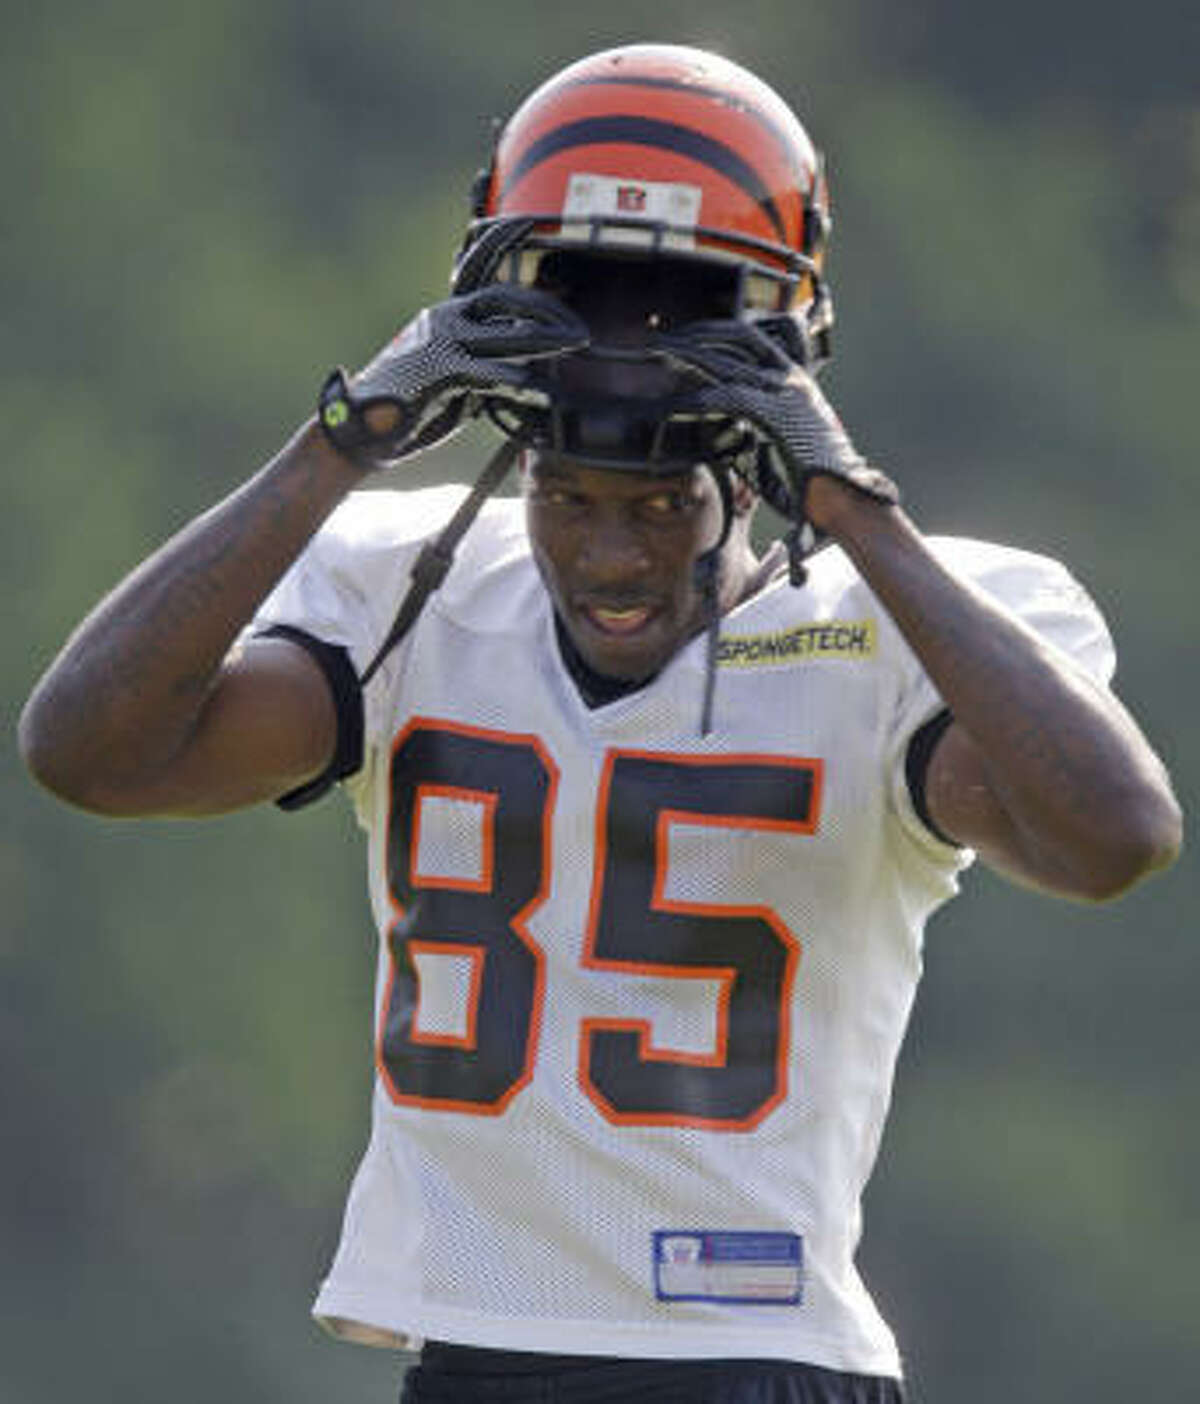 Cincinnati Bengals Bengals receiver Chad Ochocinco puts on his helmet on Saturday, the opening day of his team's camp in Georgetown, Ky.